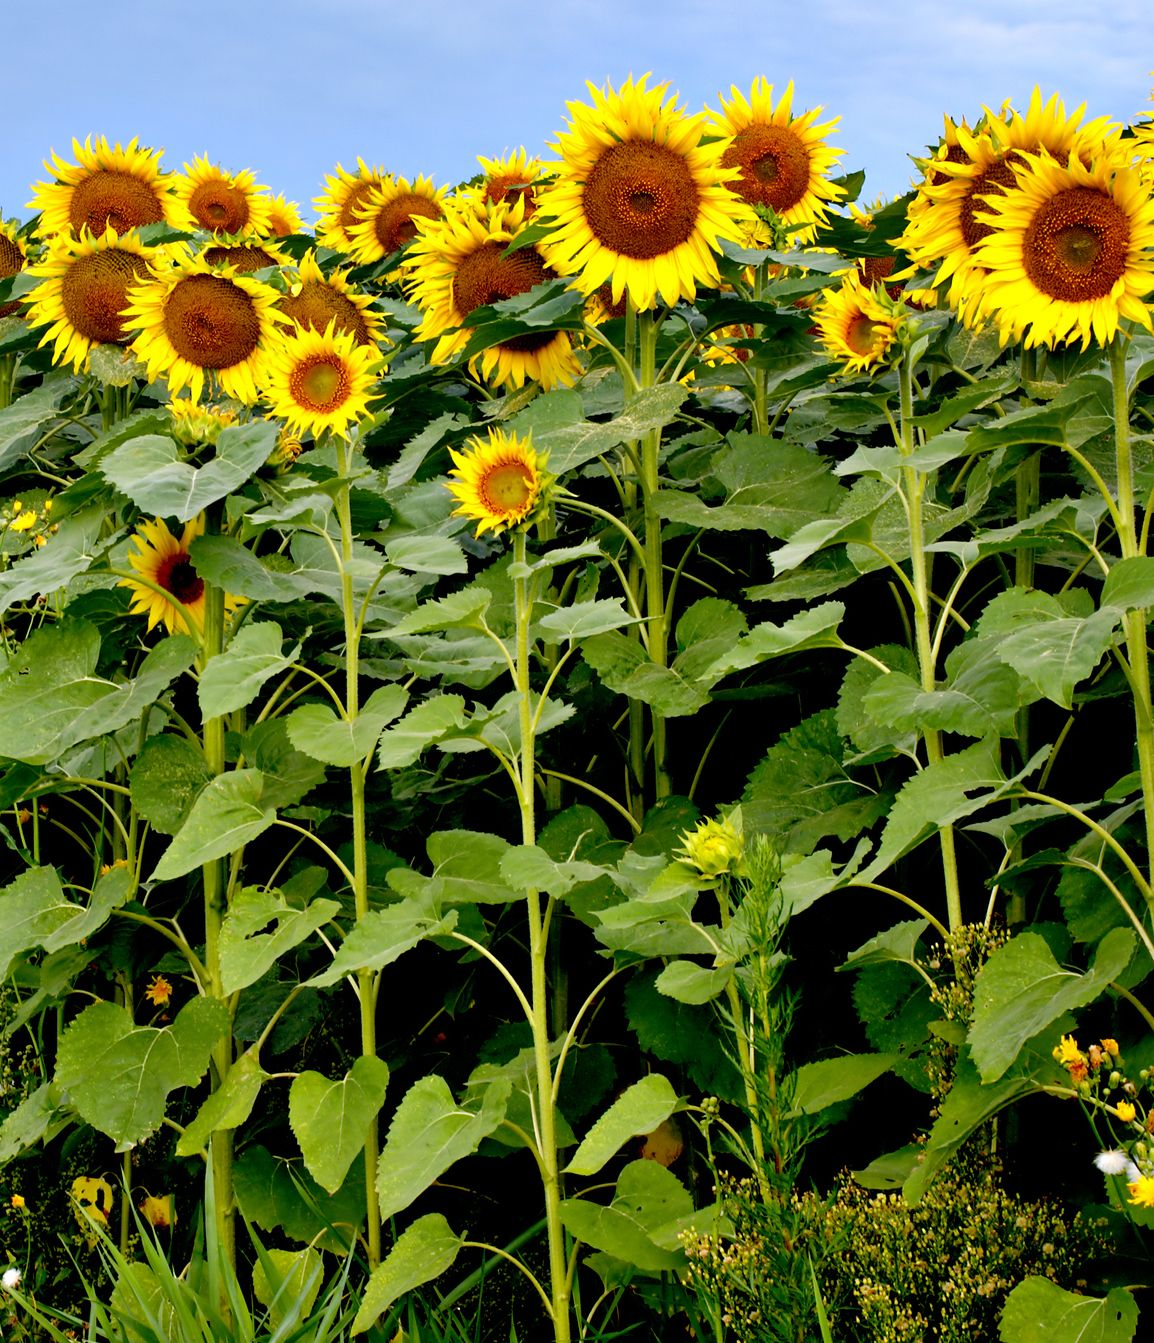 15 Different Types of Sunflowers - Sunflower Varieties To Plant